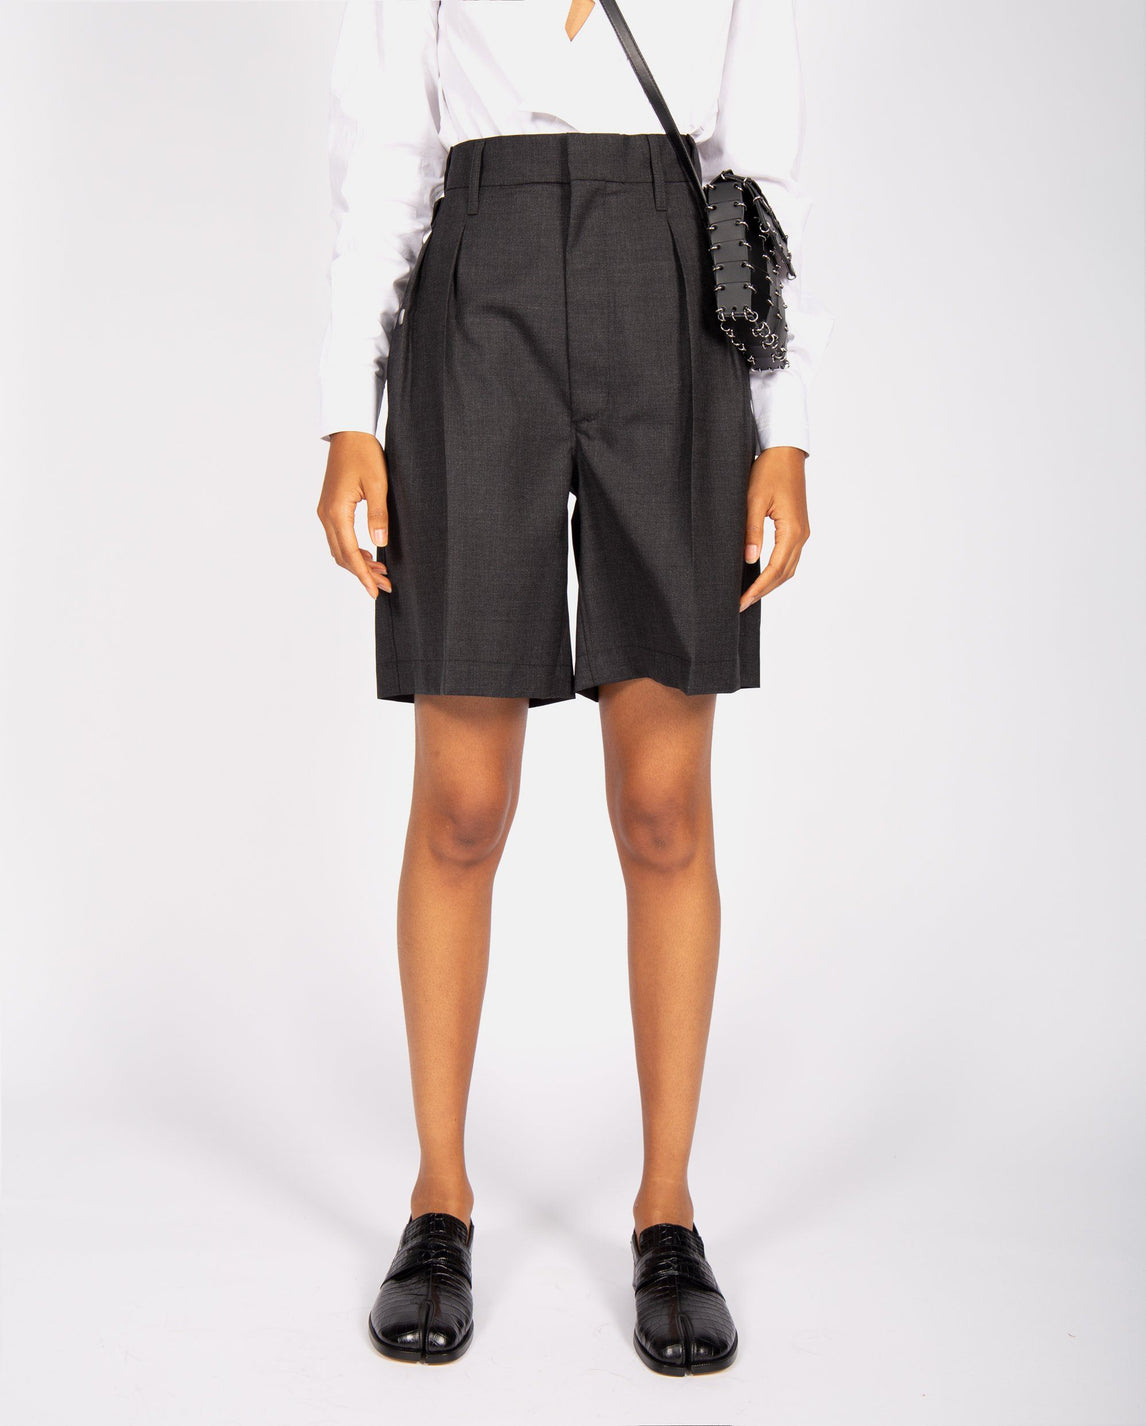 Tailored Shorts - Grey MENS MAISON MARGIELA